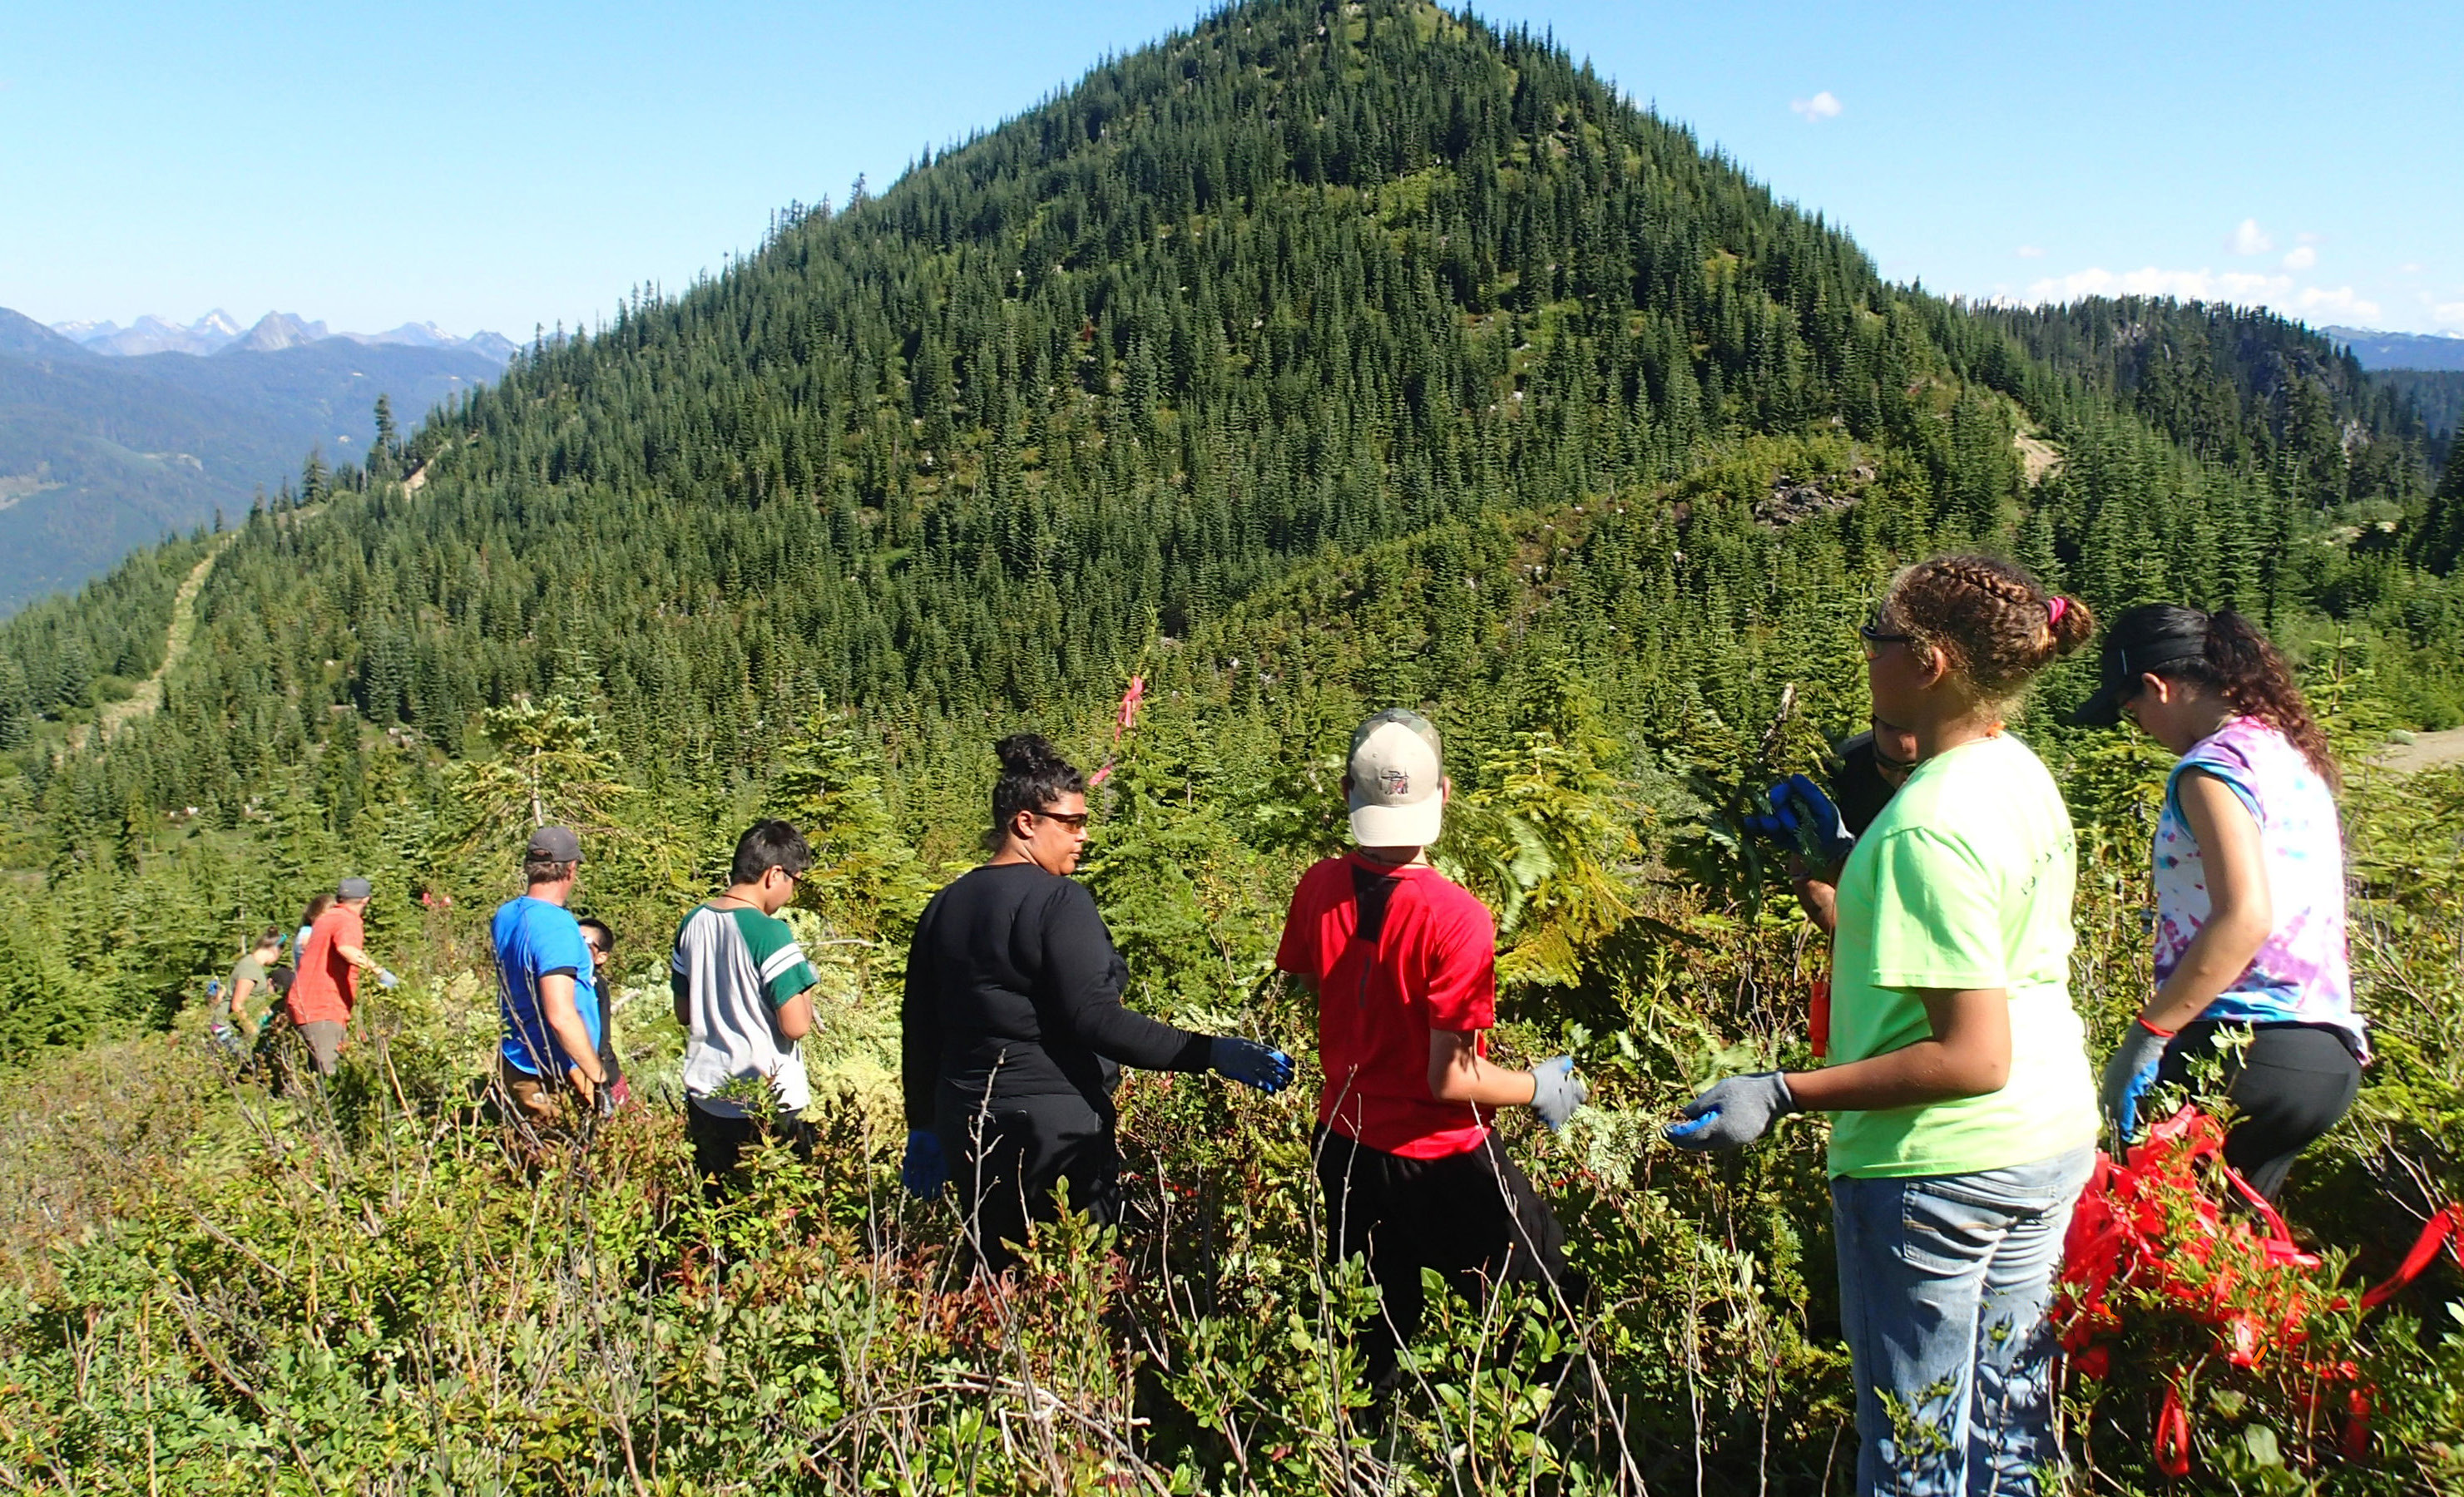 Tulalip Tribes preserve huckleberry grounds on ancestral territory in Washington